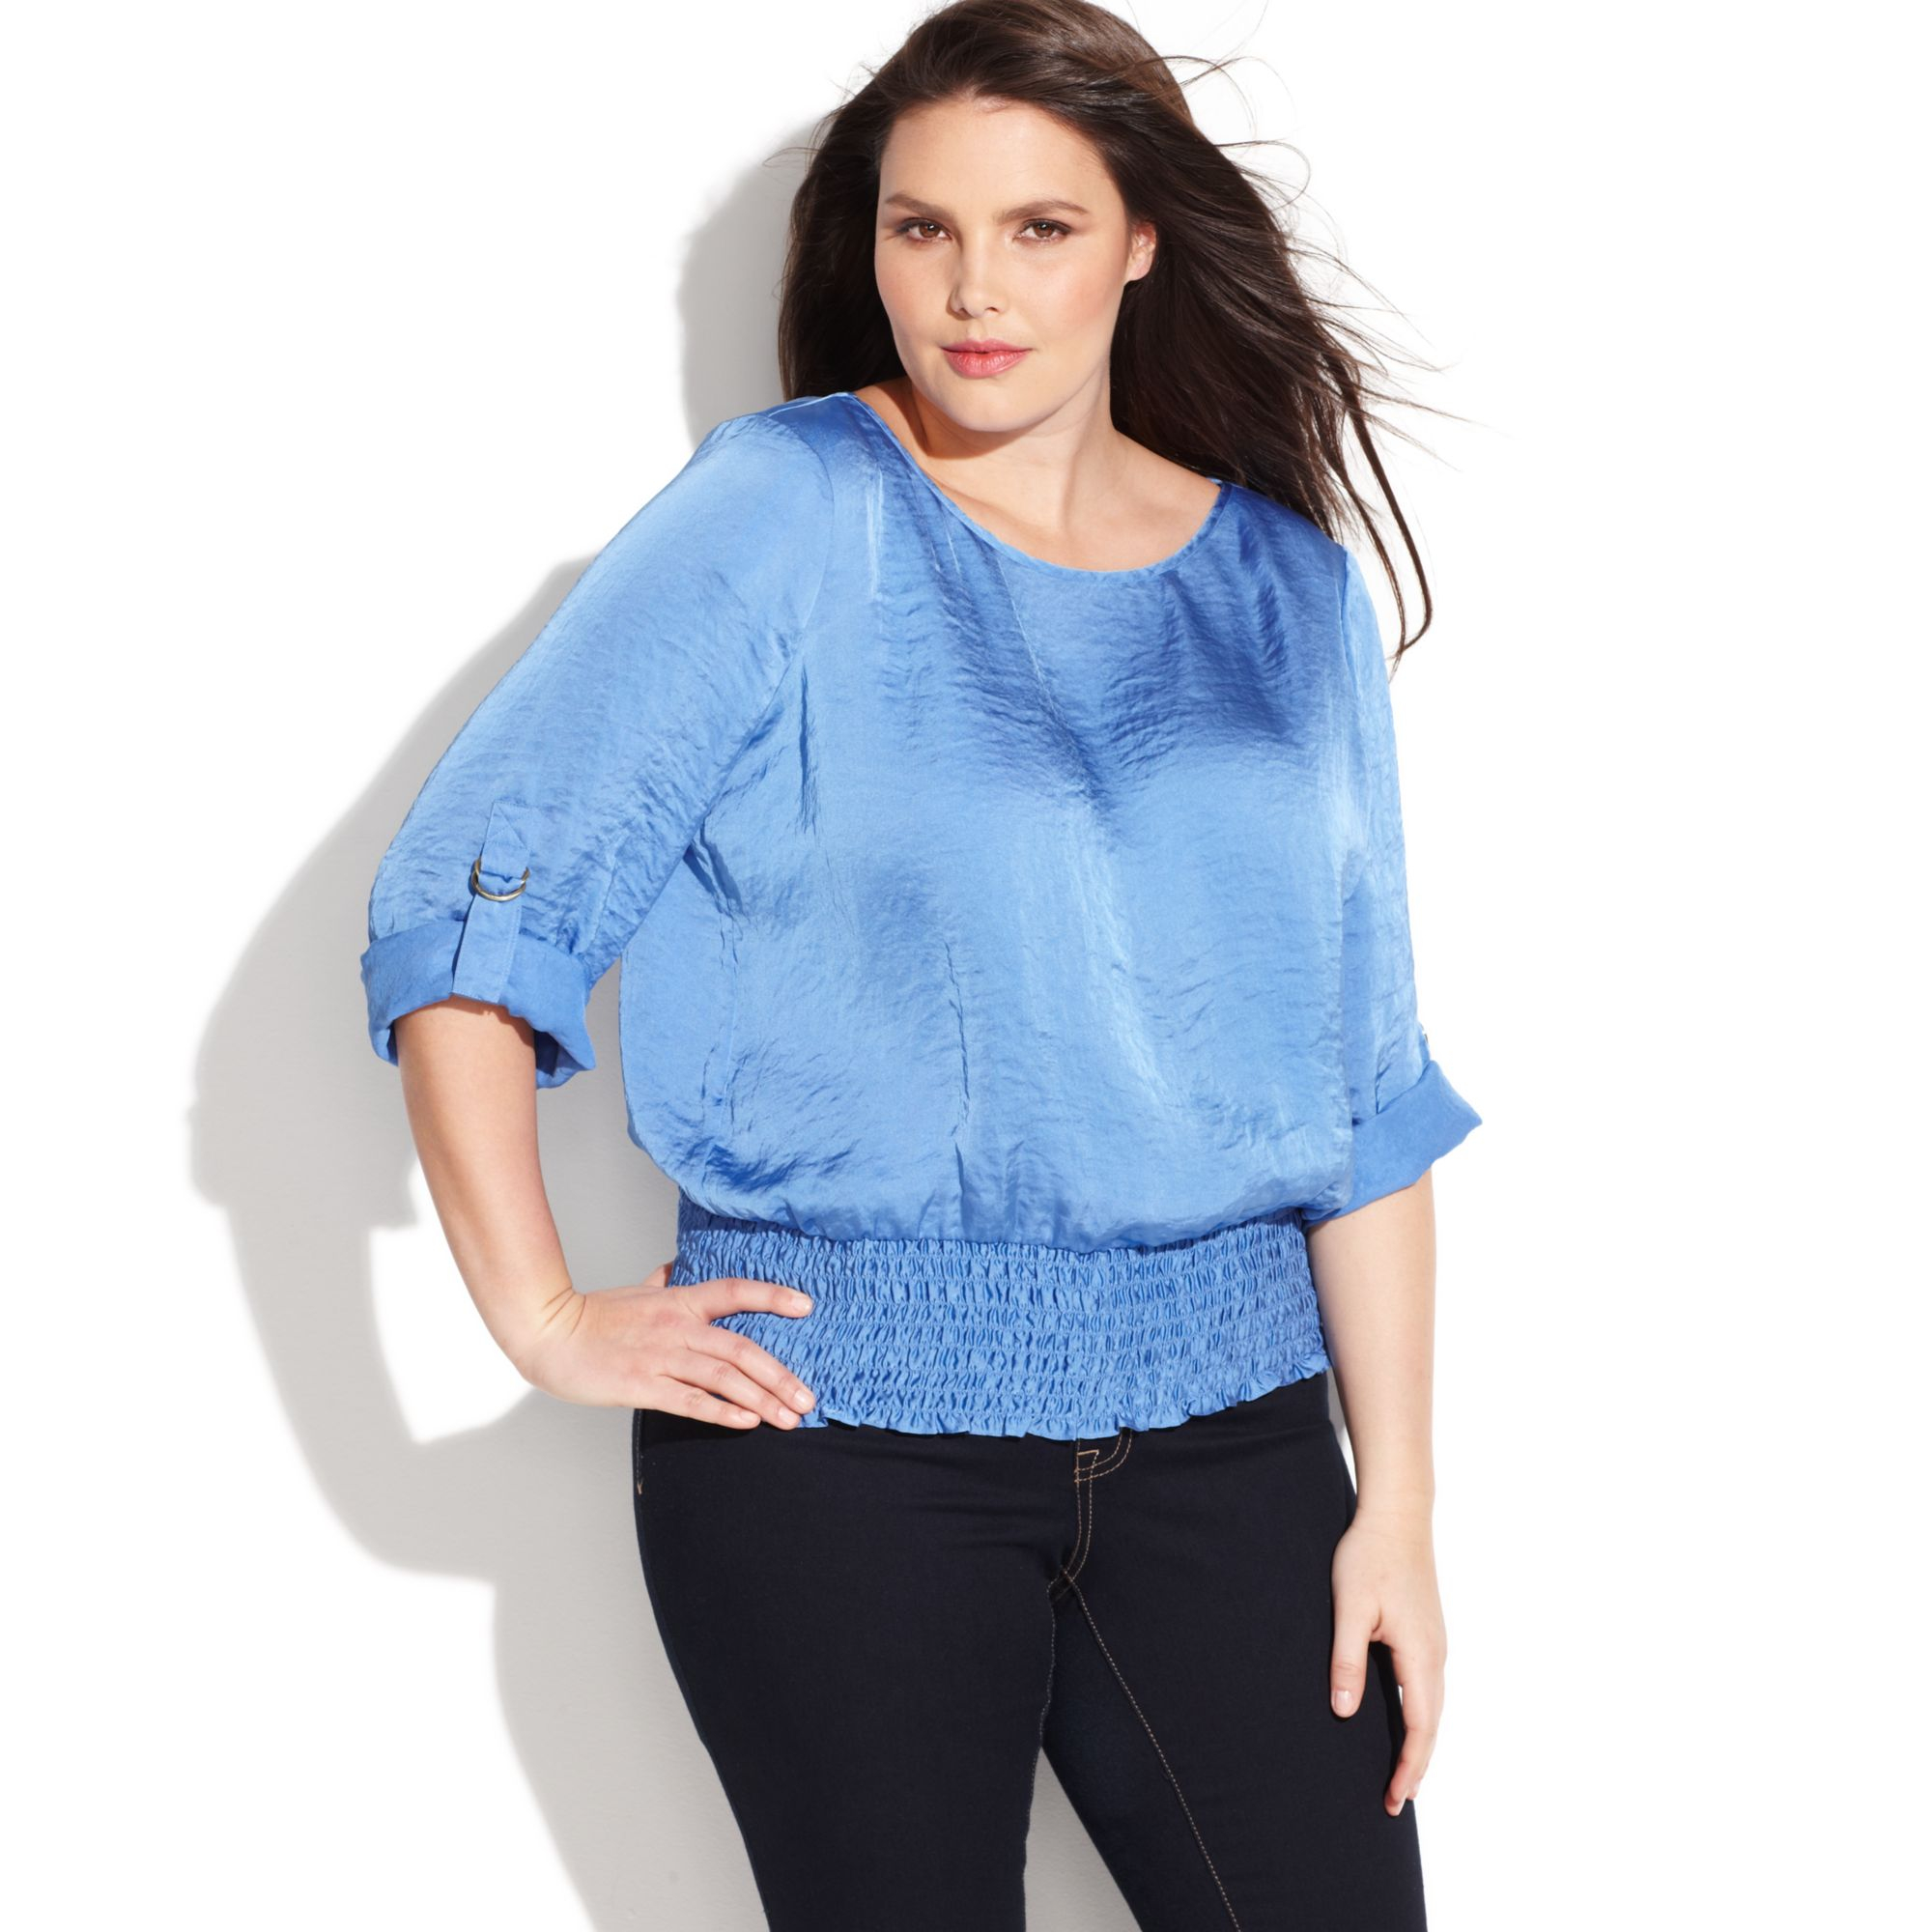 Liz Claiborne Short Sleeve Drop Shoulder Sleeve Geo Linear Peasant 10mins.ml Rewards Points· % Off Boots· 60% Off Outerwear· Free Shipping to StoresTypes: Dresses, Tops, Jeans, Activewear, Sweaters, Jackets, Maternity.